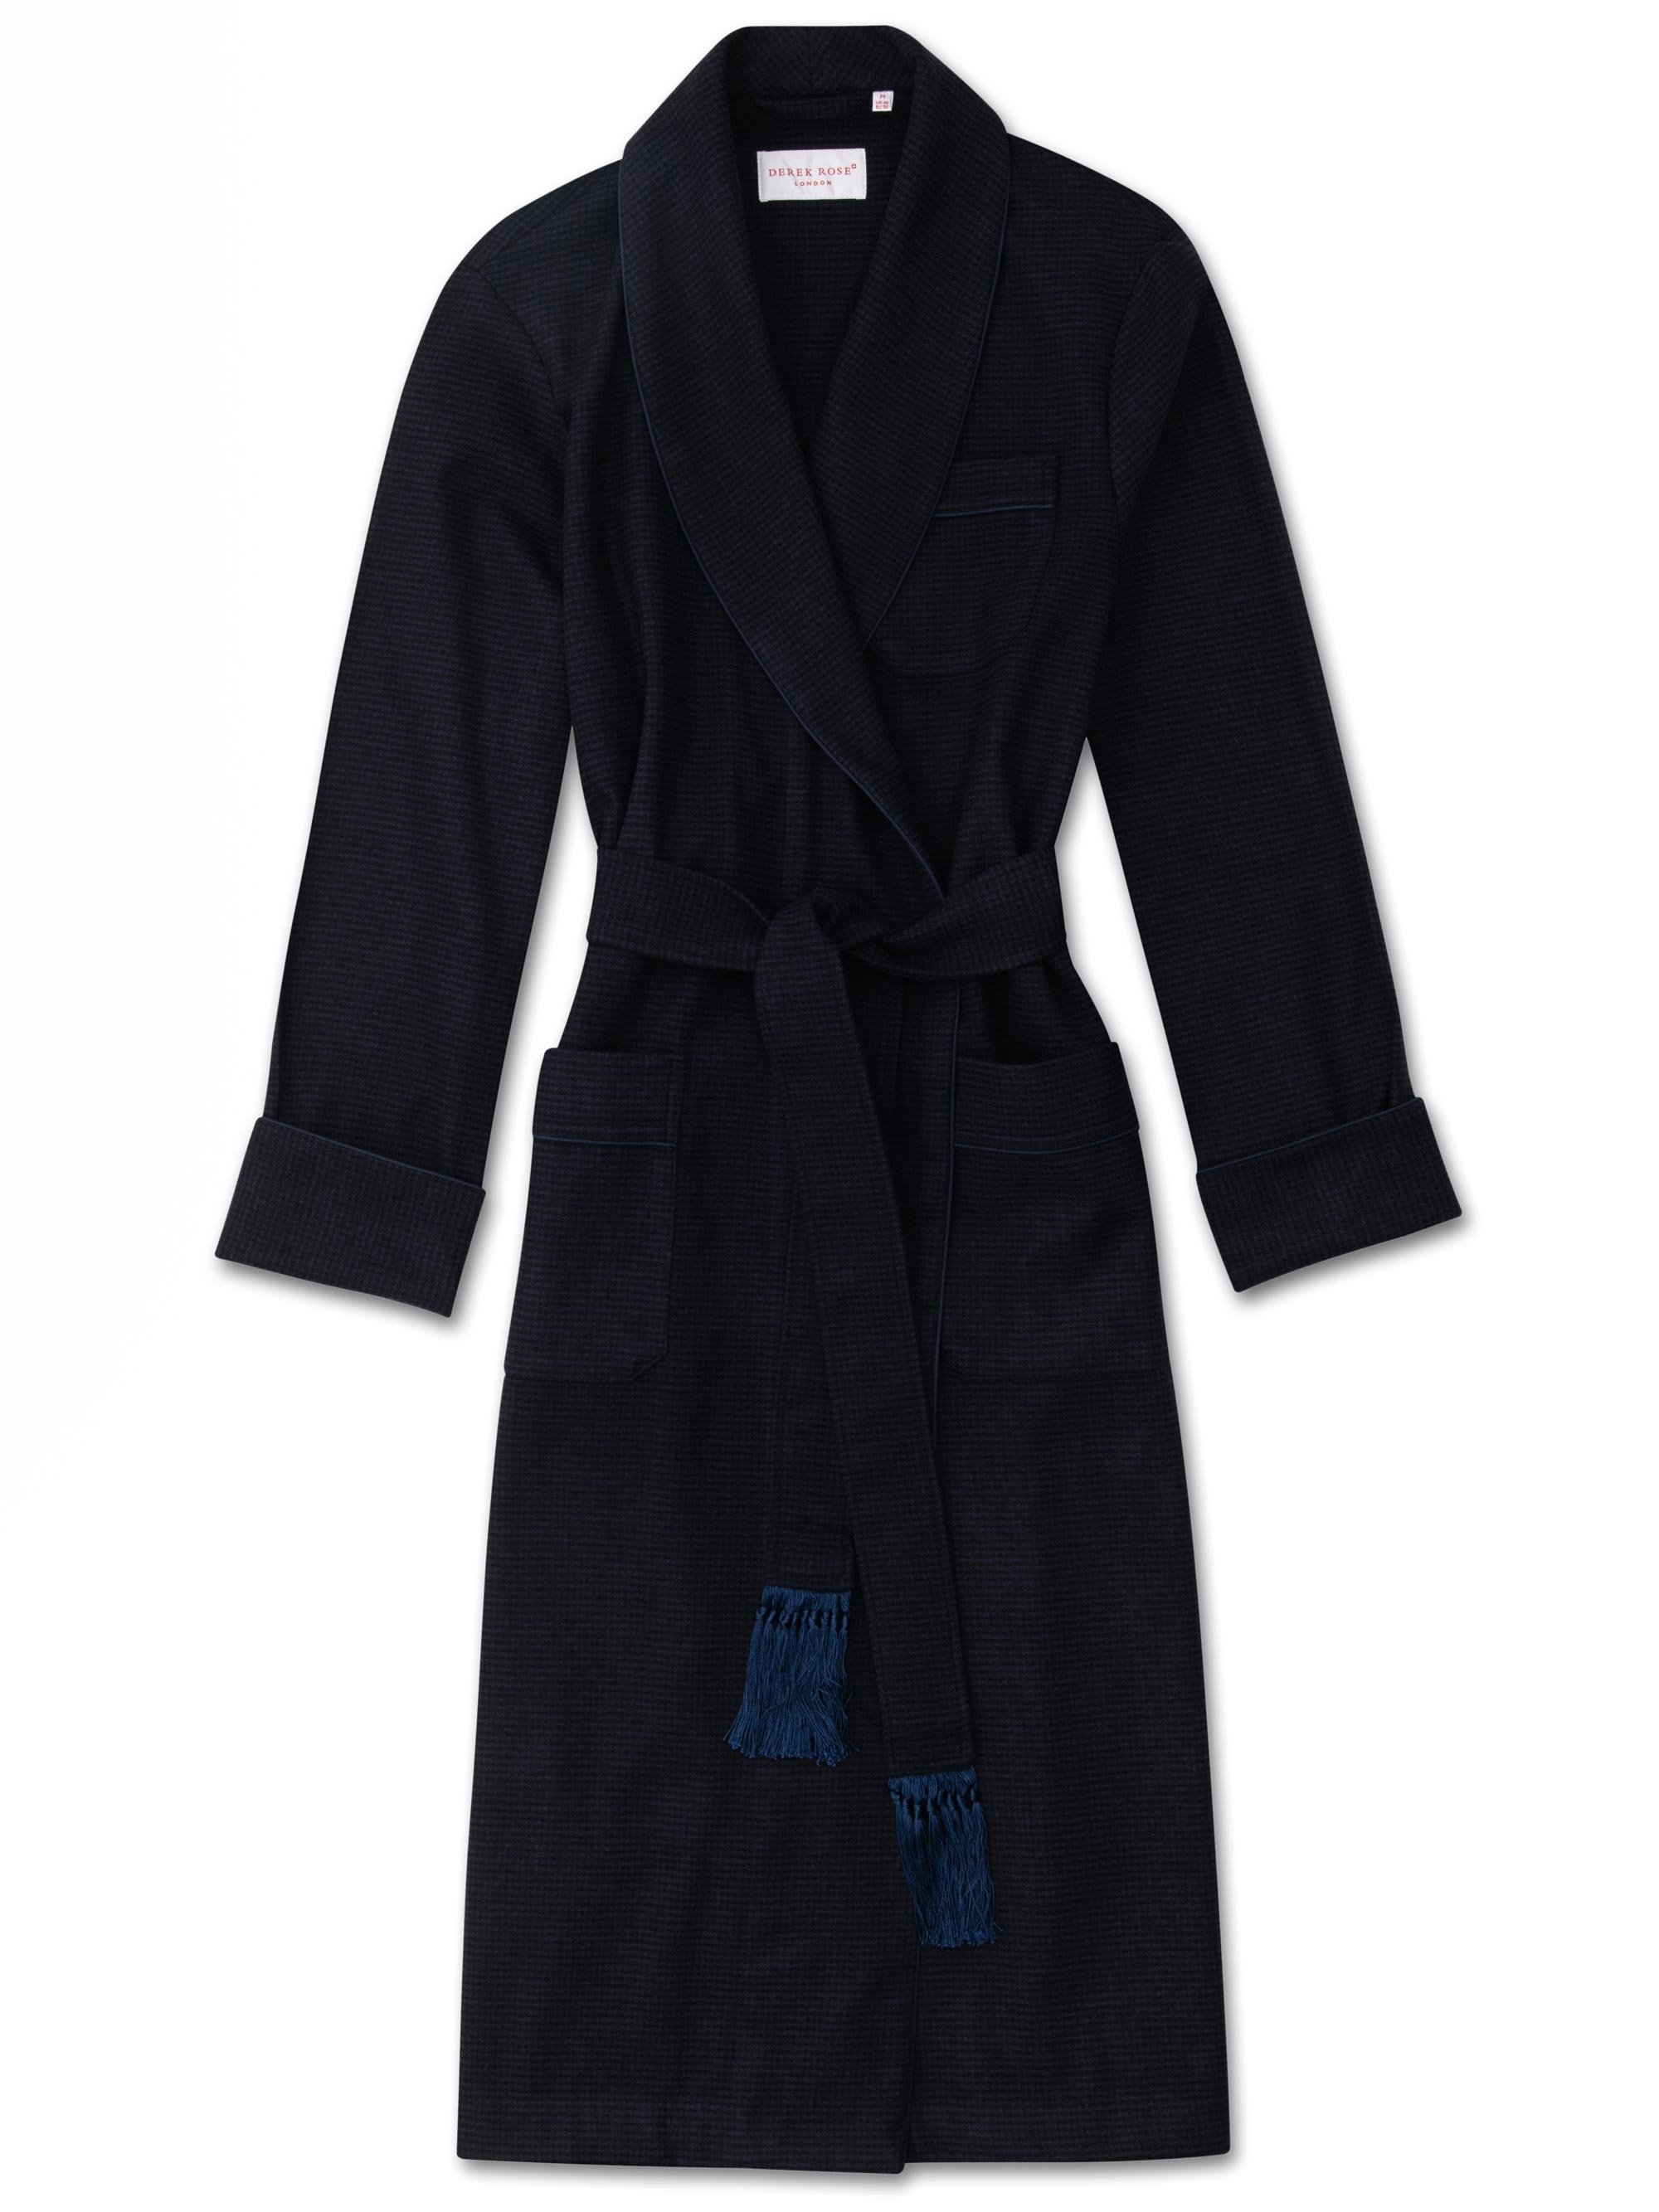 Men's Tasseled Belt Dressing Gown Chiltern Merino Cashmere Check Navy